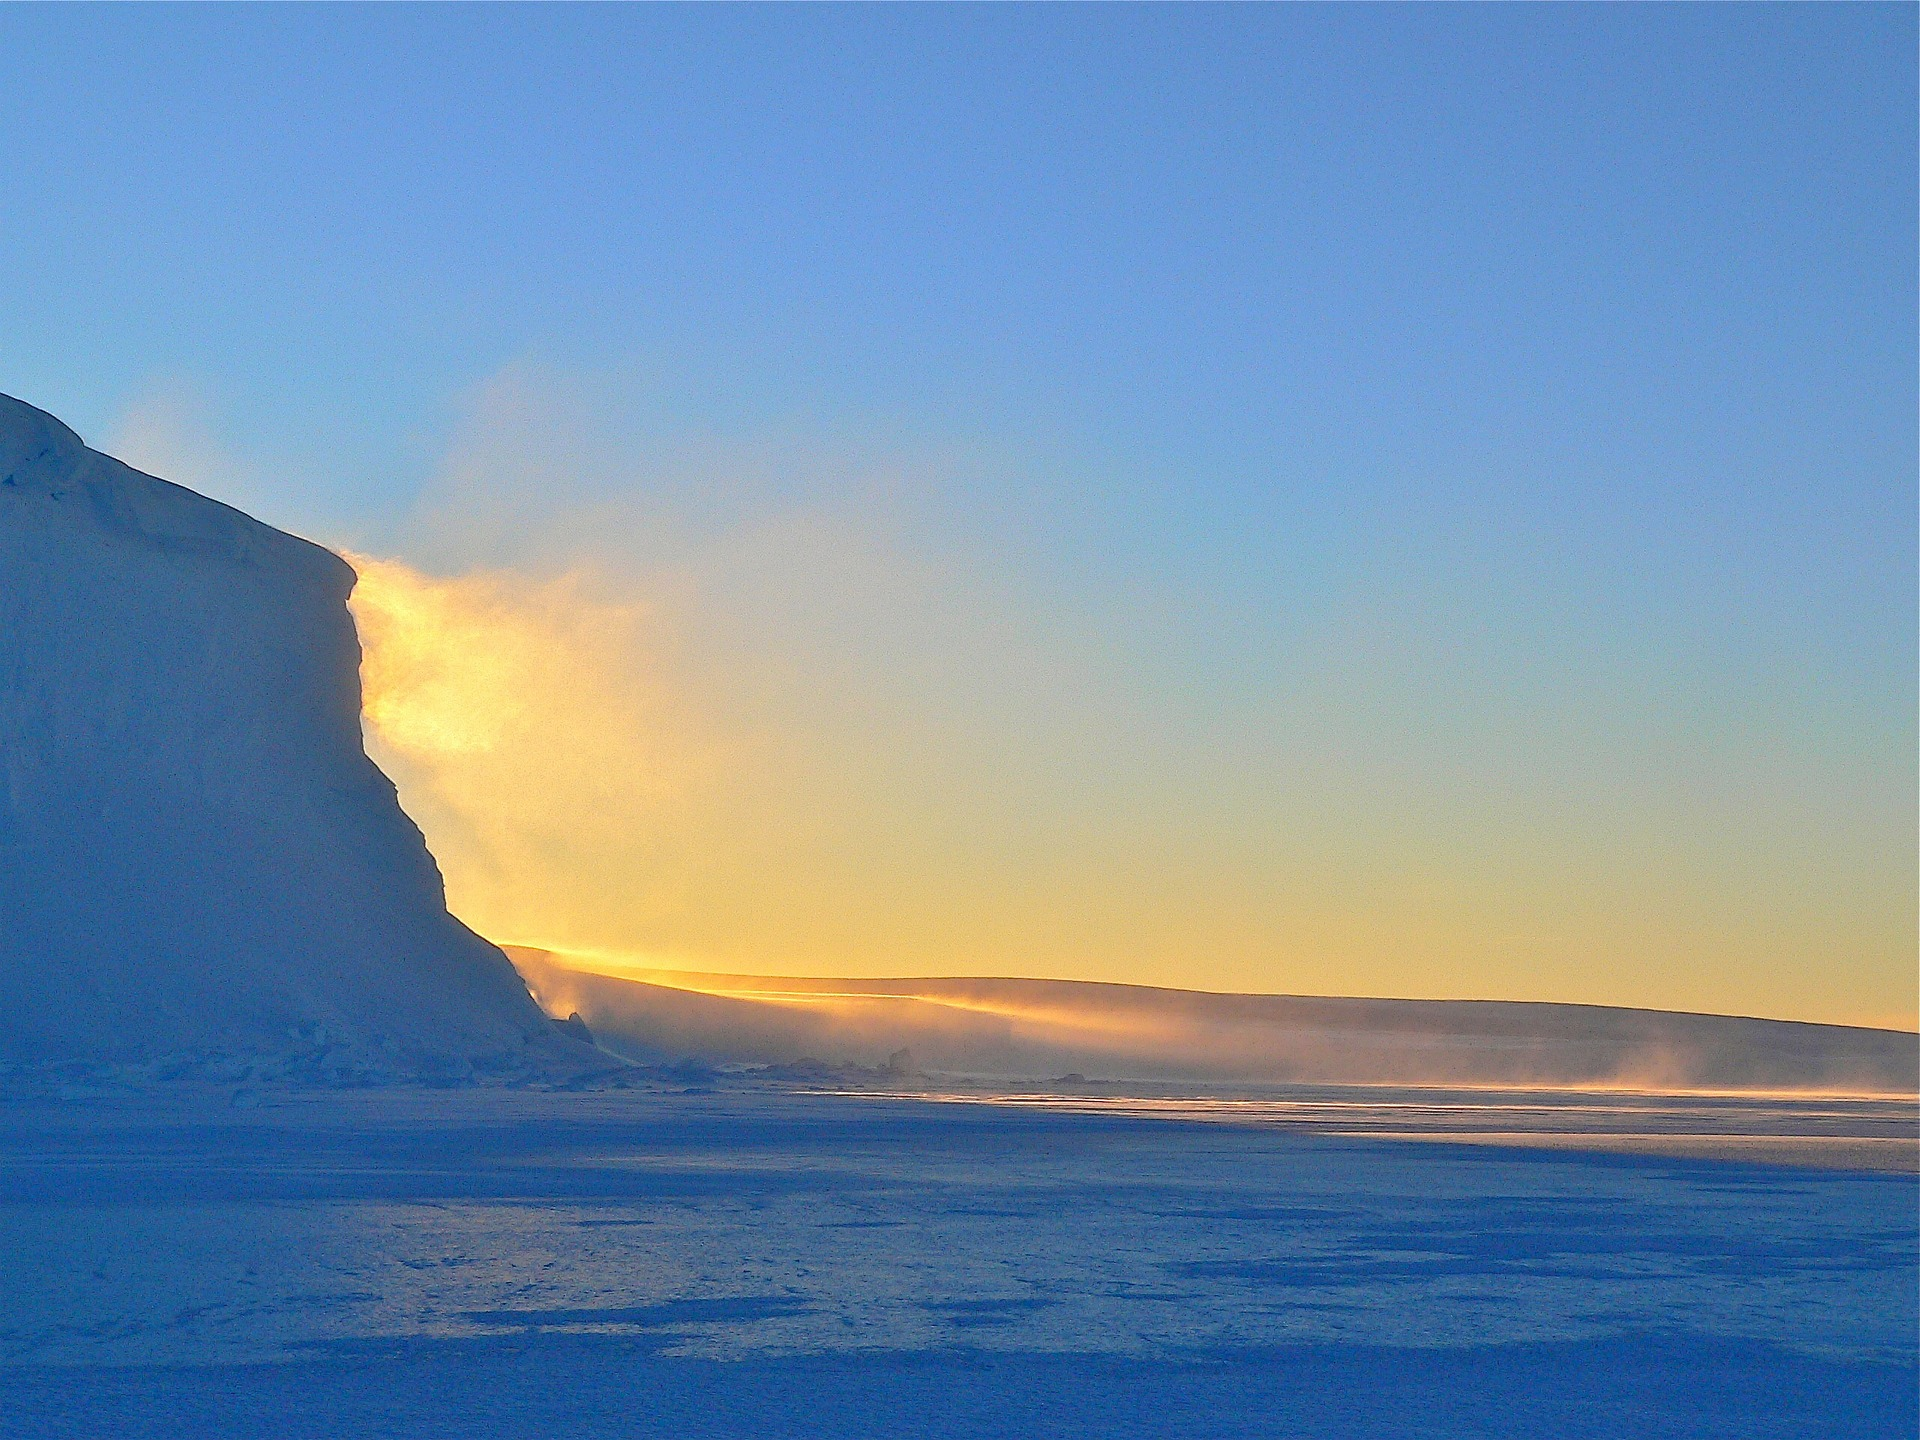 icy-429133_1920